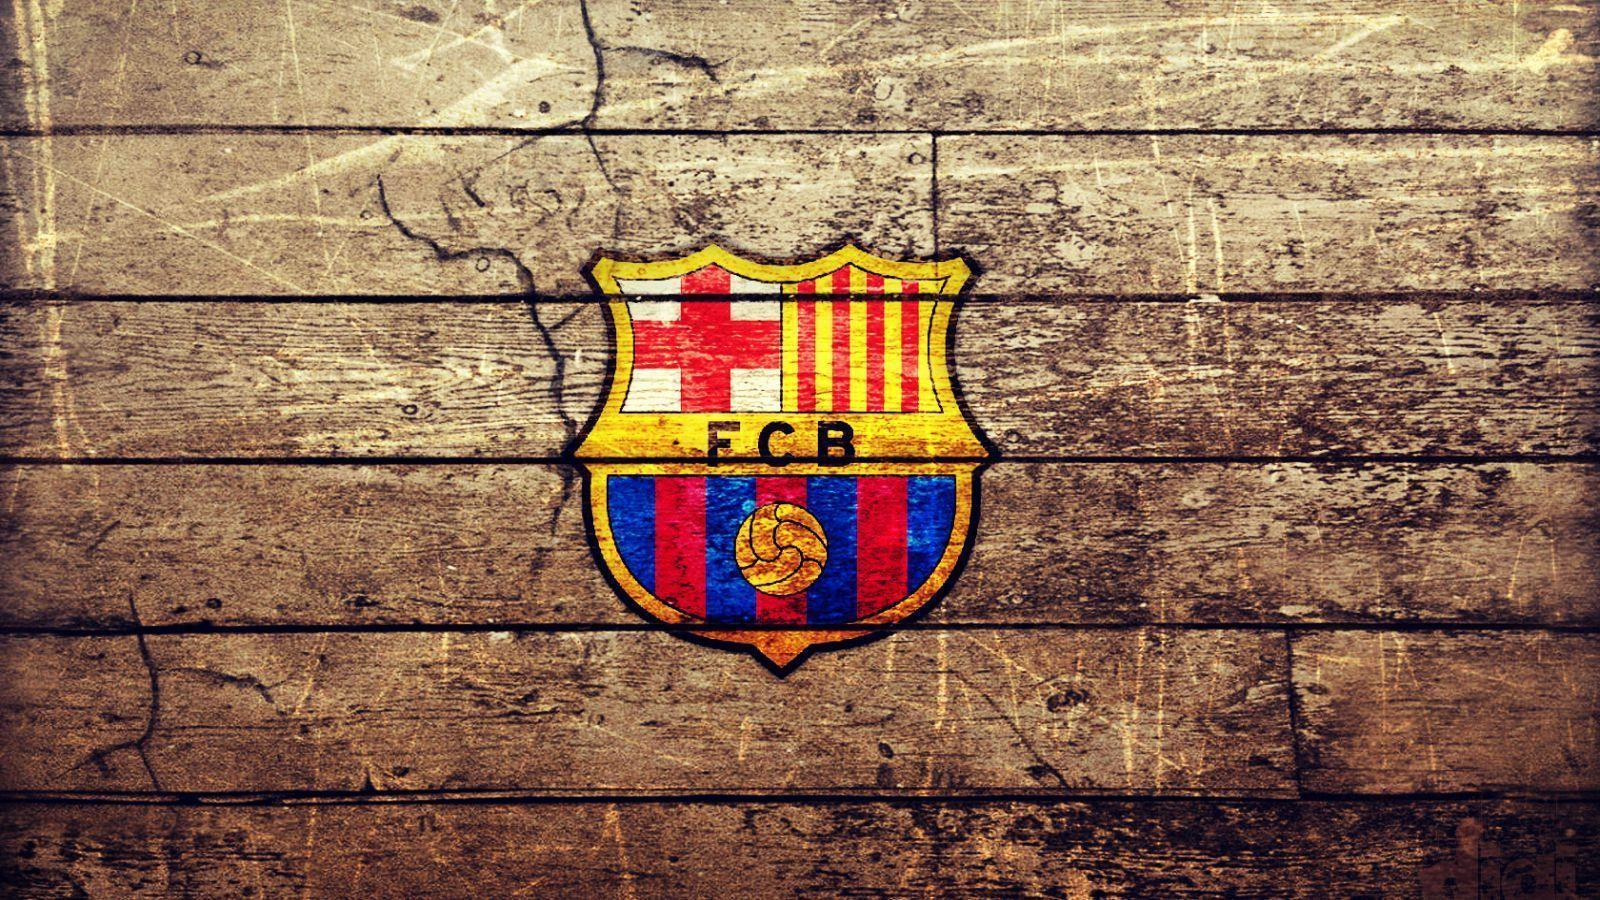 Fondos De Pantalla Del Fútbol Club Barcelona Wallpapers: Logo Barcelona Wallpapers Terbaru 2015